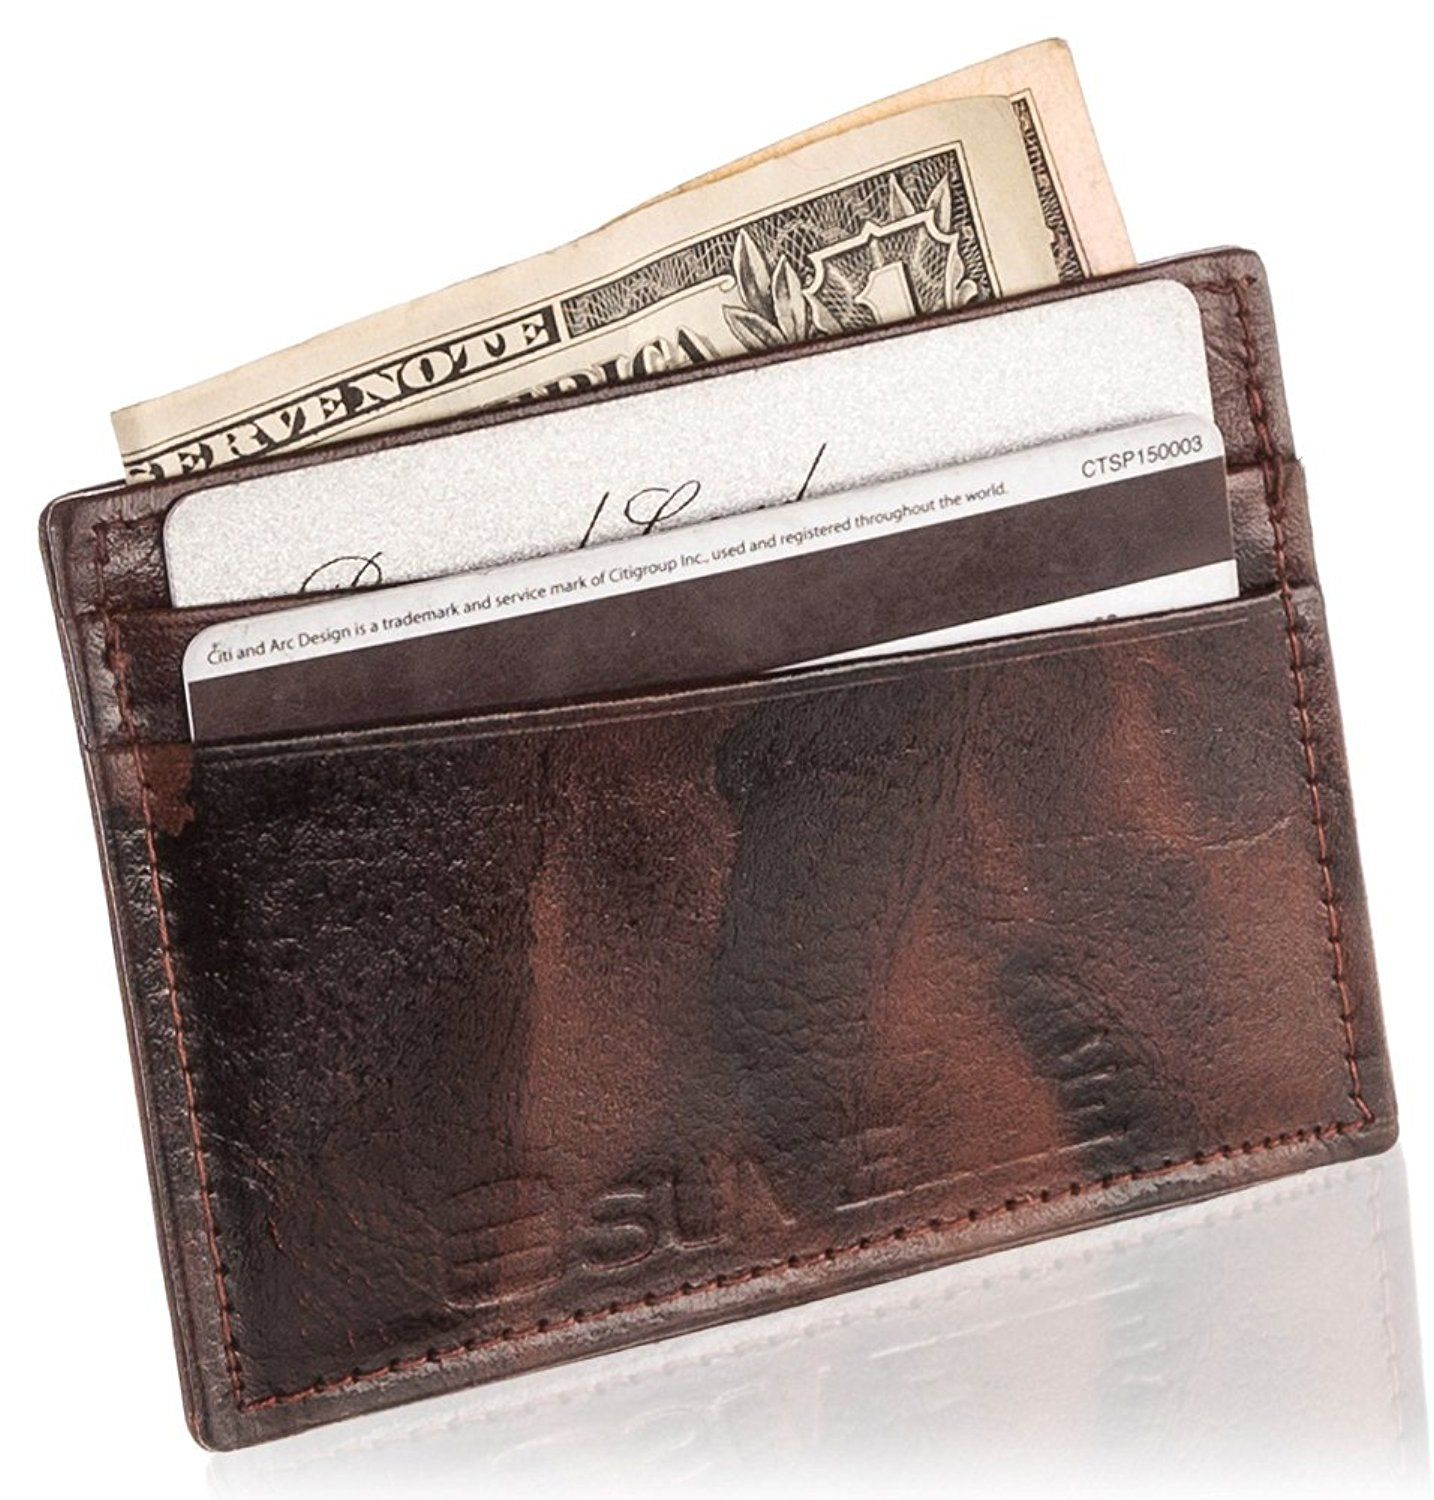 Suvelle Genuine Leather Credit Card Holder, Slim Business Card ...